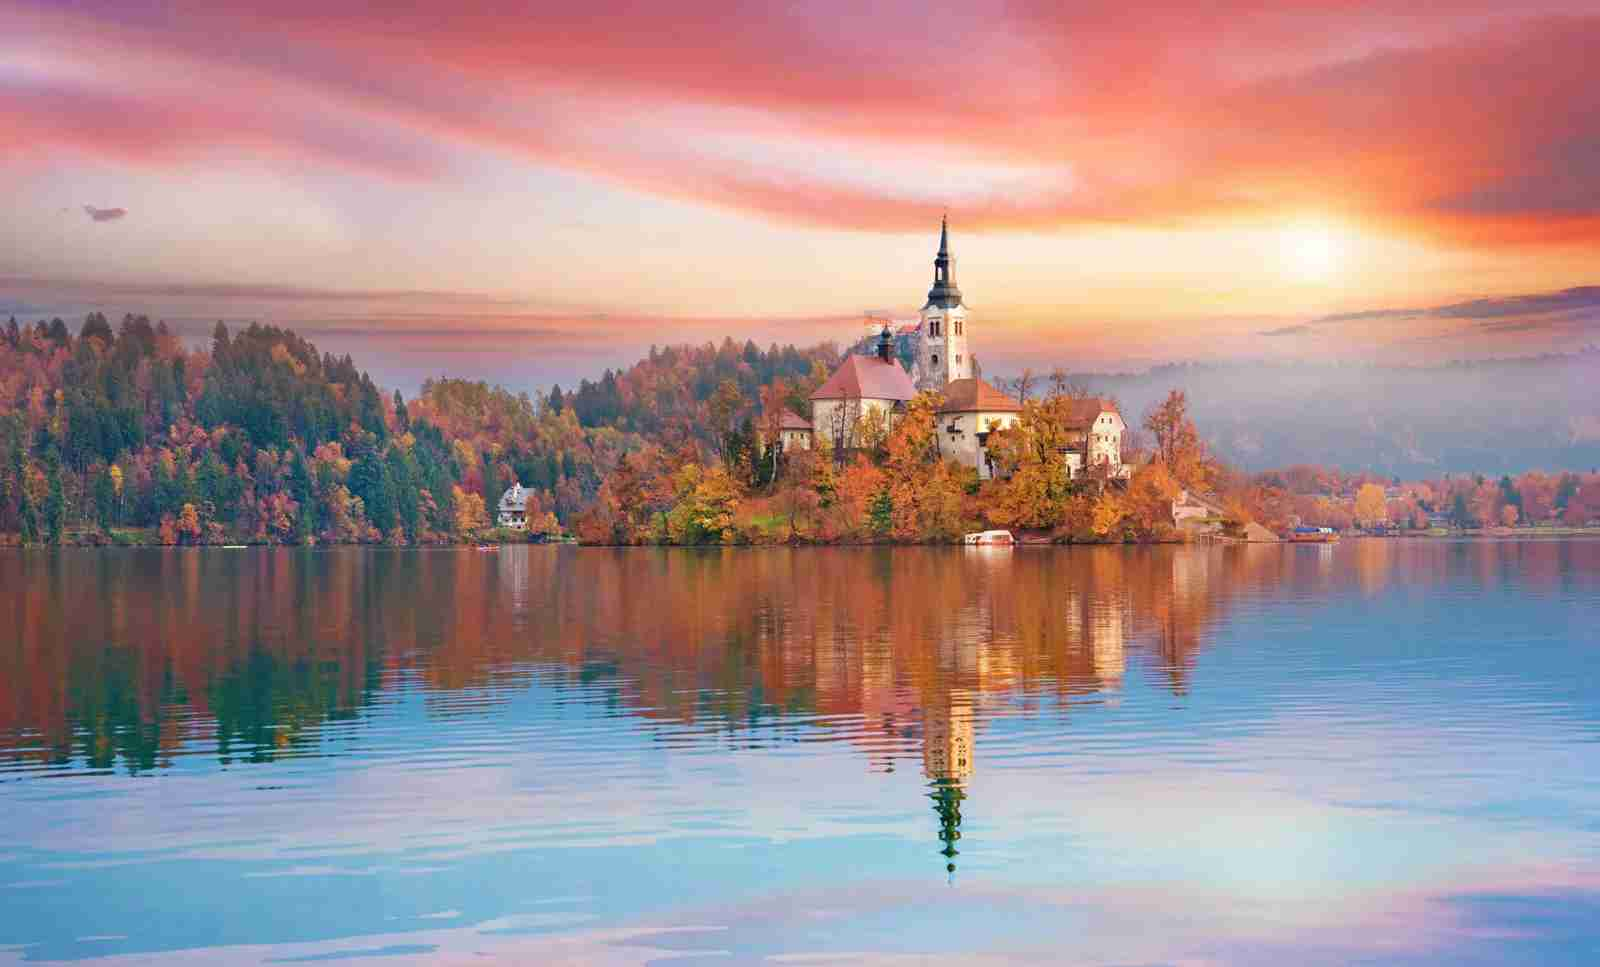 Lake Bled in Slovenia. (Photo by AndrijTer / Getty Images)